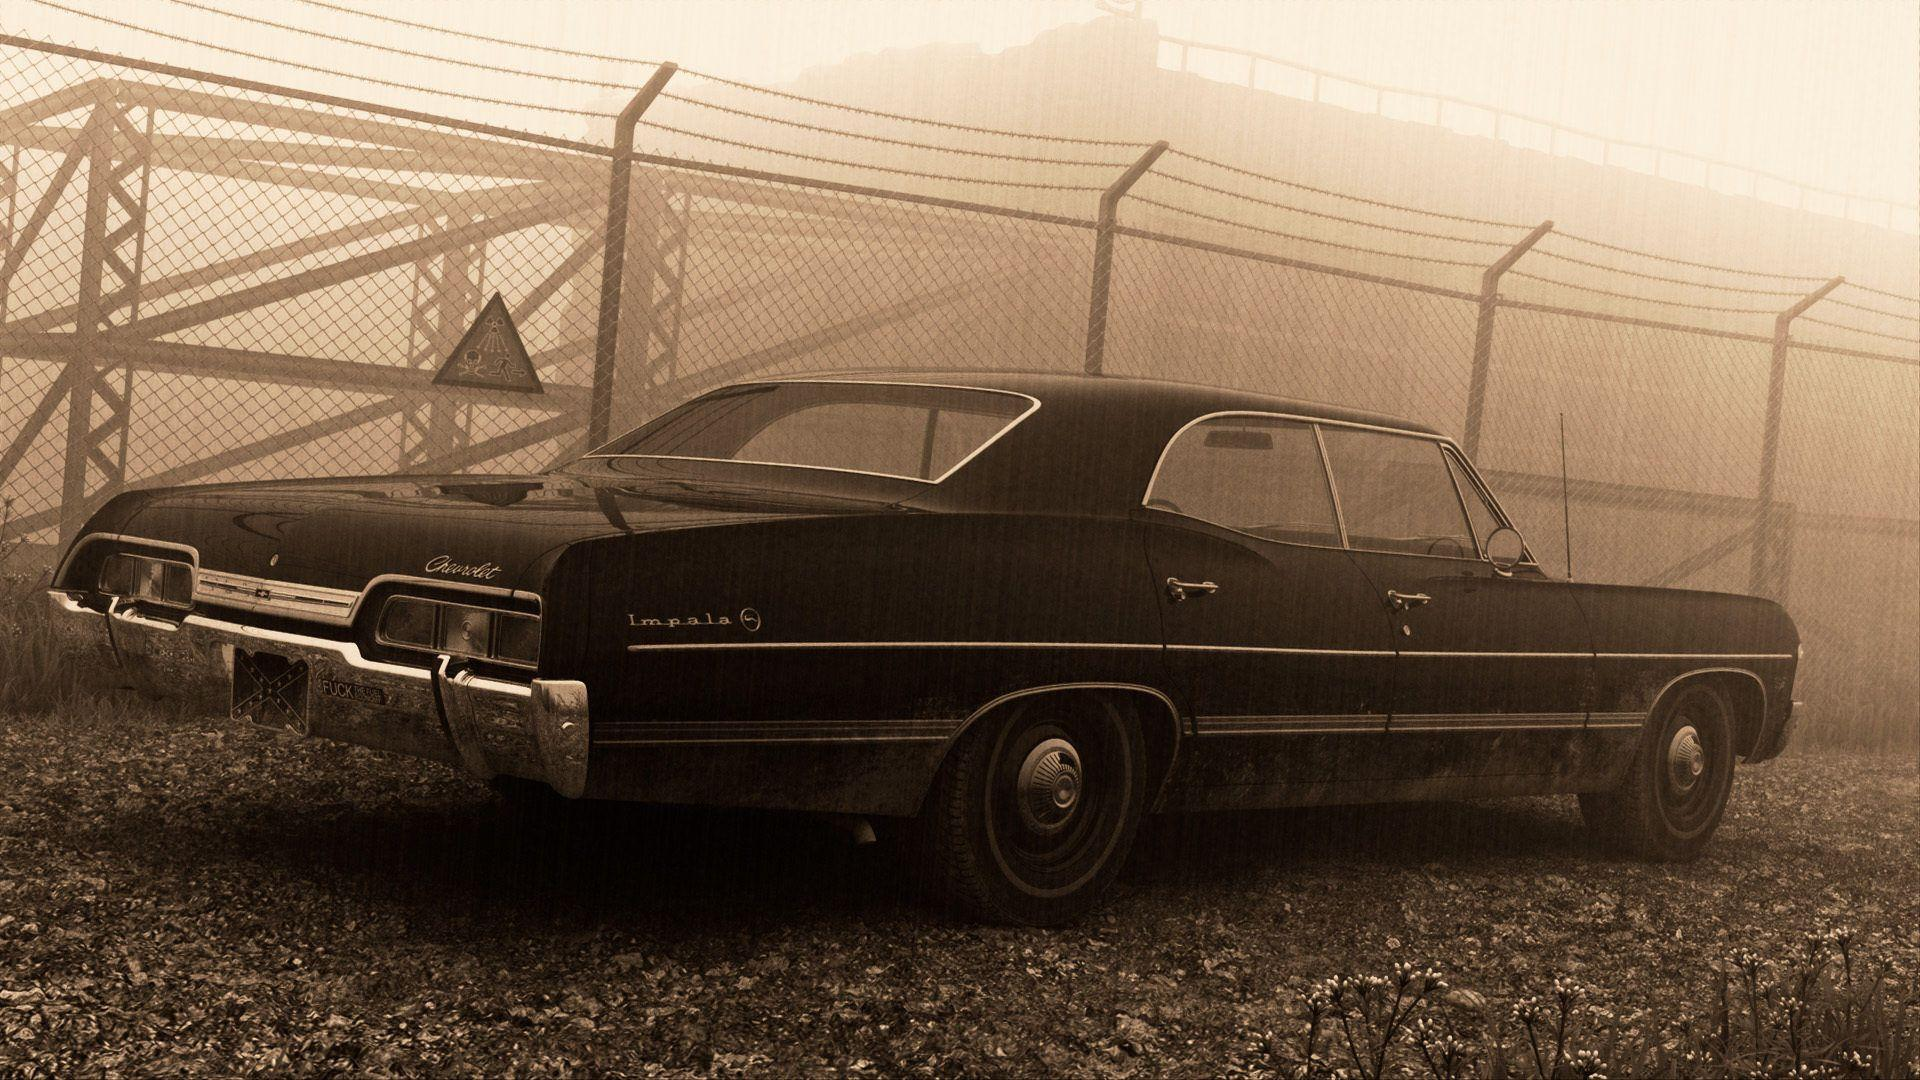 1920x1080 supernatural, hardtop, chevrolet impala, 1967, sedan